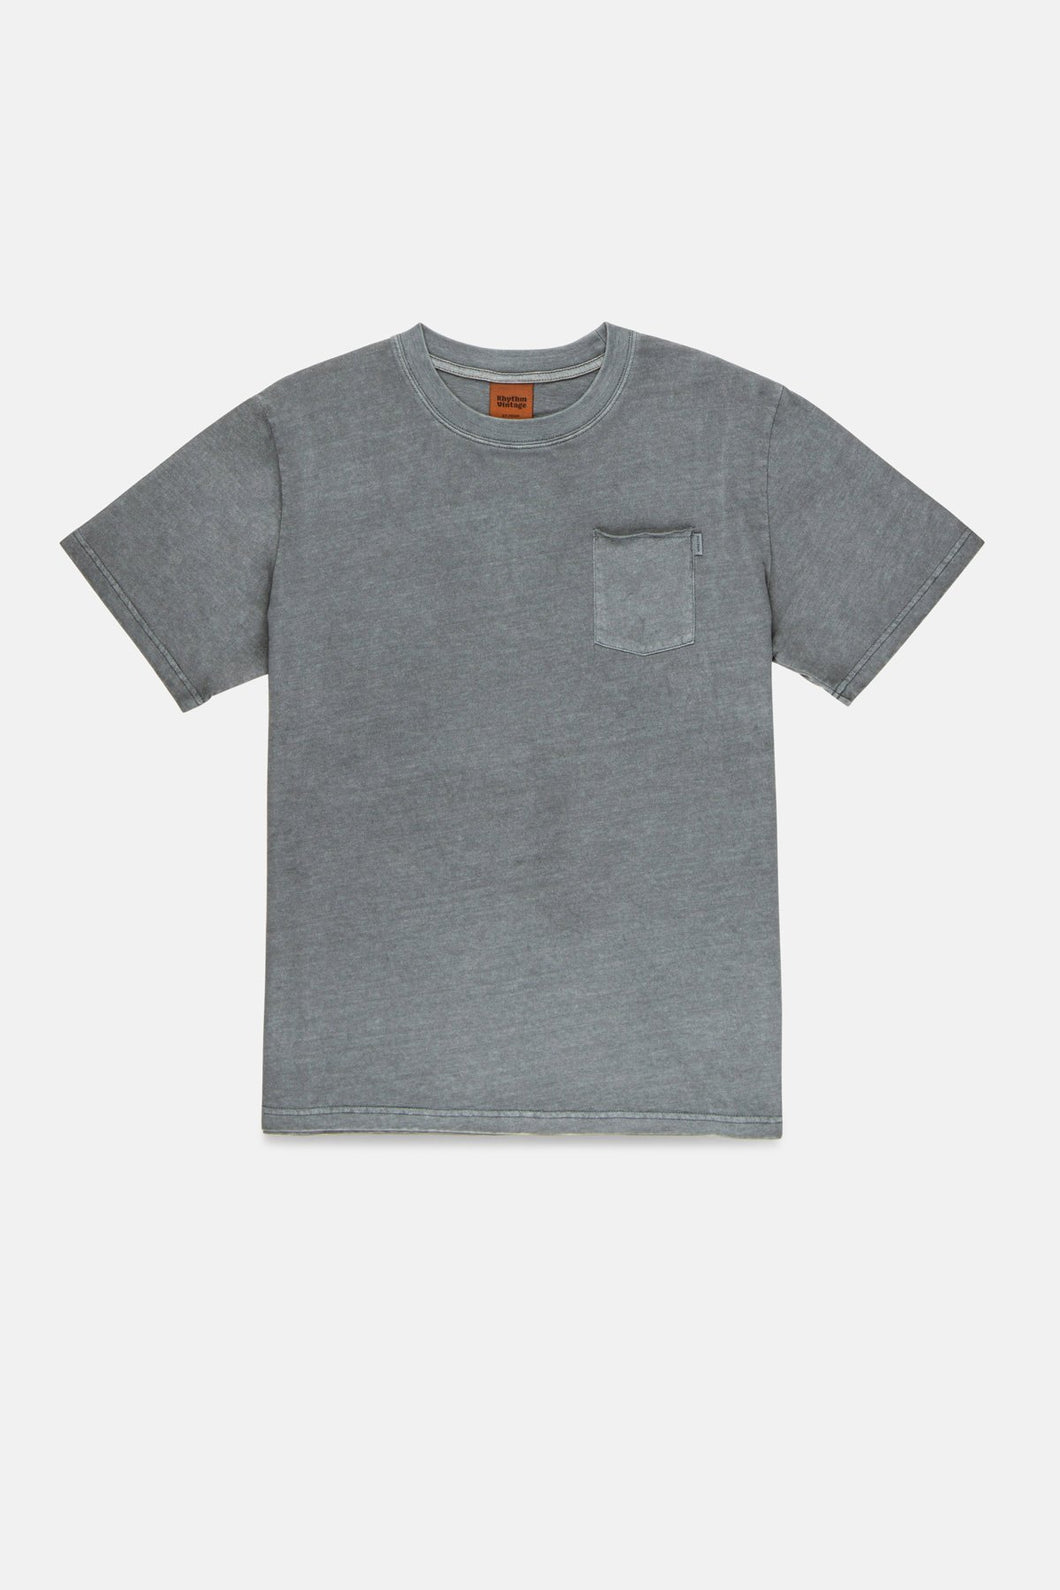 EVERYDAY WASH TSHIRT